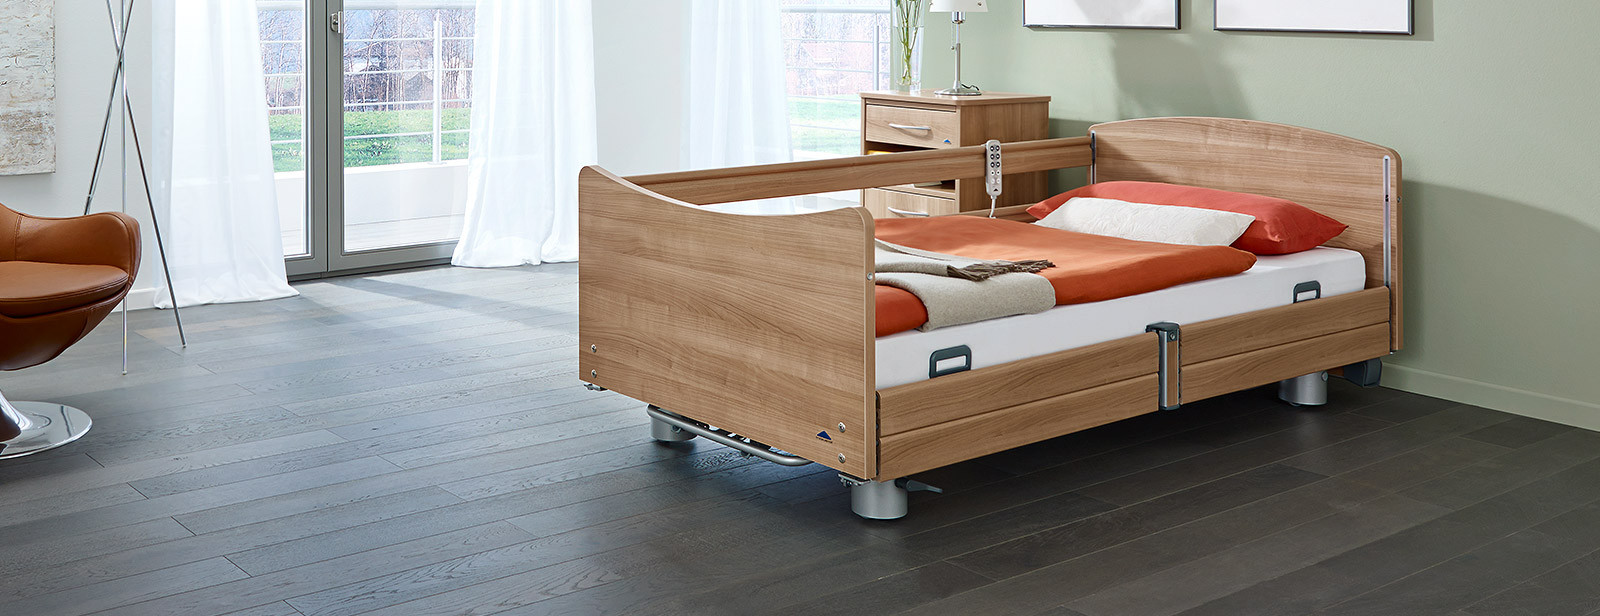 hardwood floor protectors for bed frames of hospital and care furniture that enhances well being stiegelmeyer throughout hospital and care furniture that enhances well being stiegelmeyer group